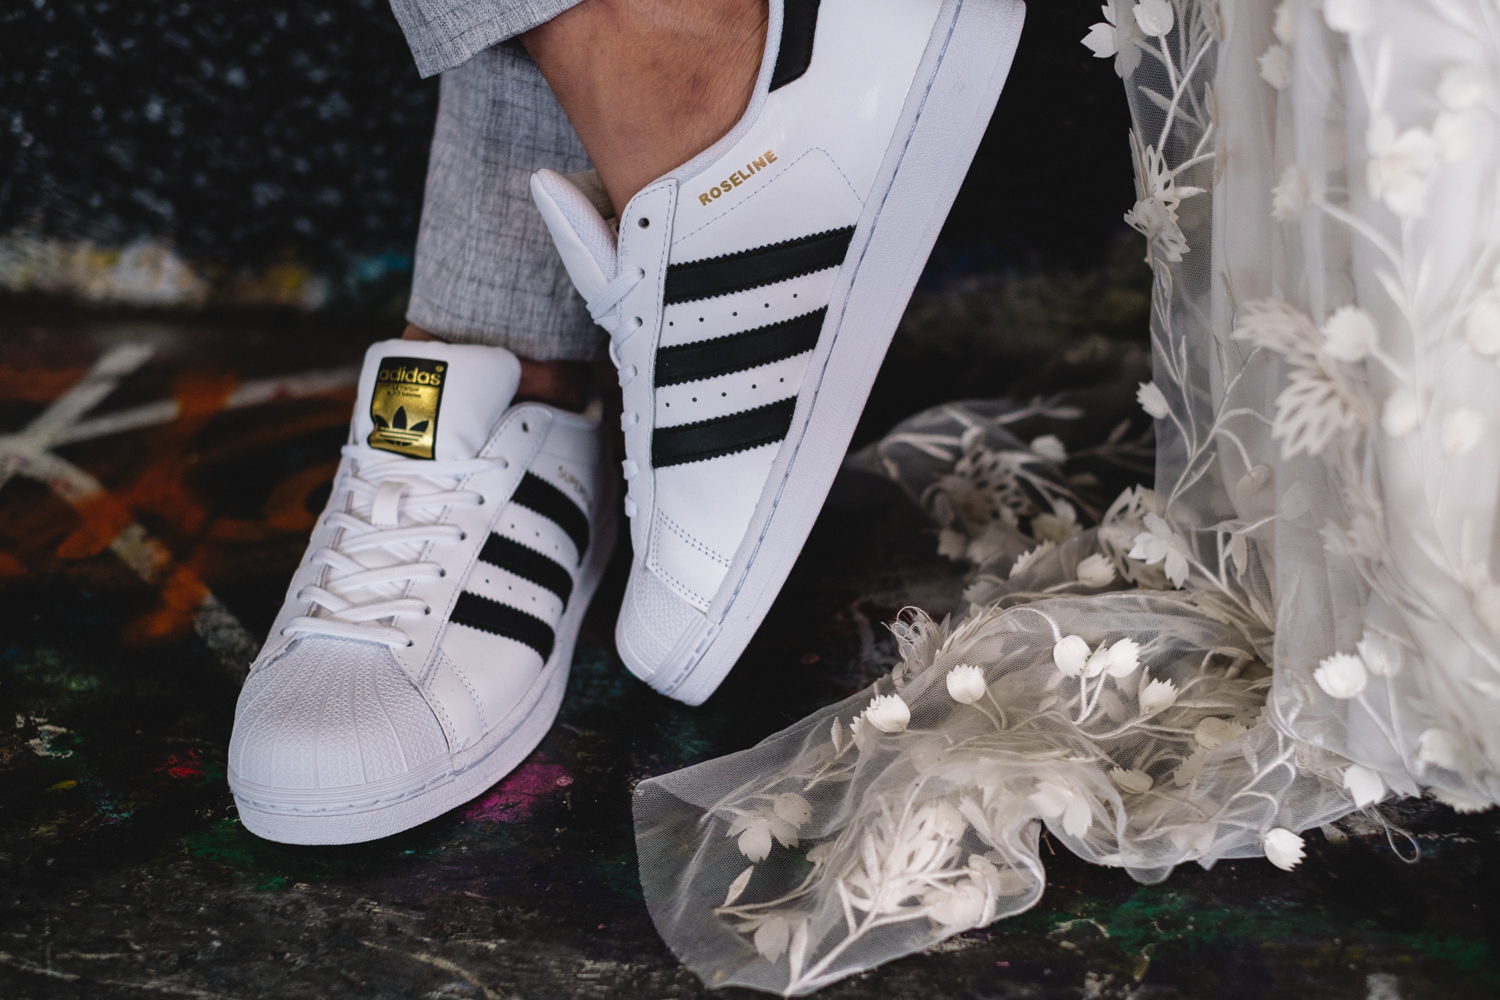 London pre-wedding photos - custom adidas trainers